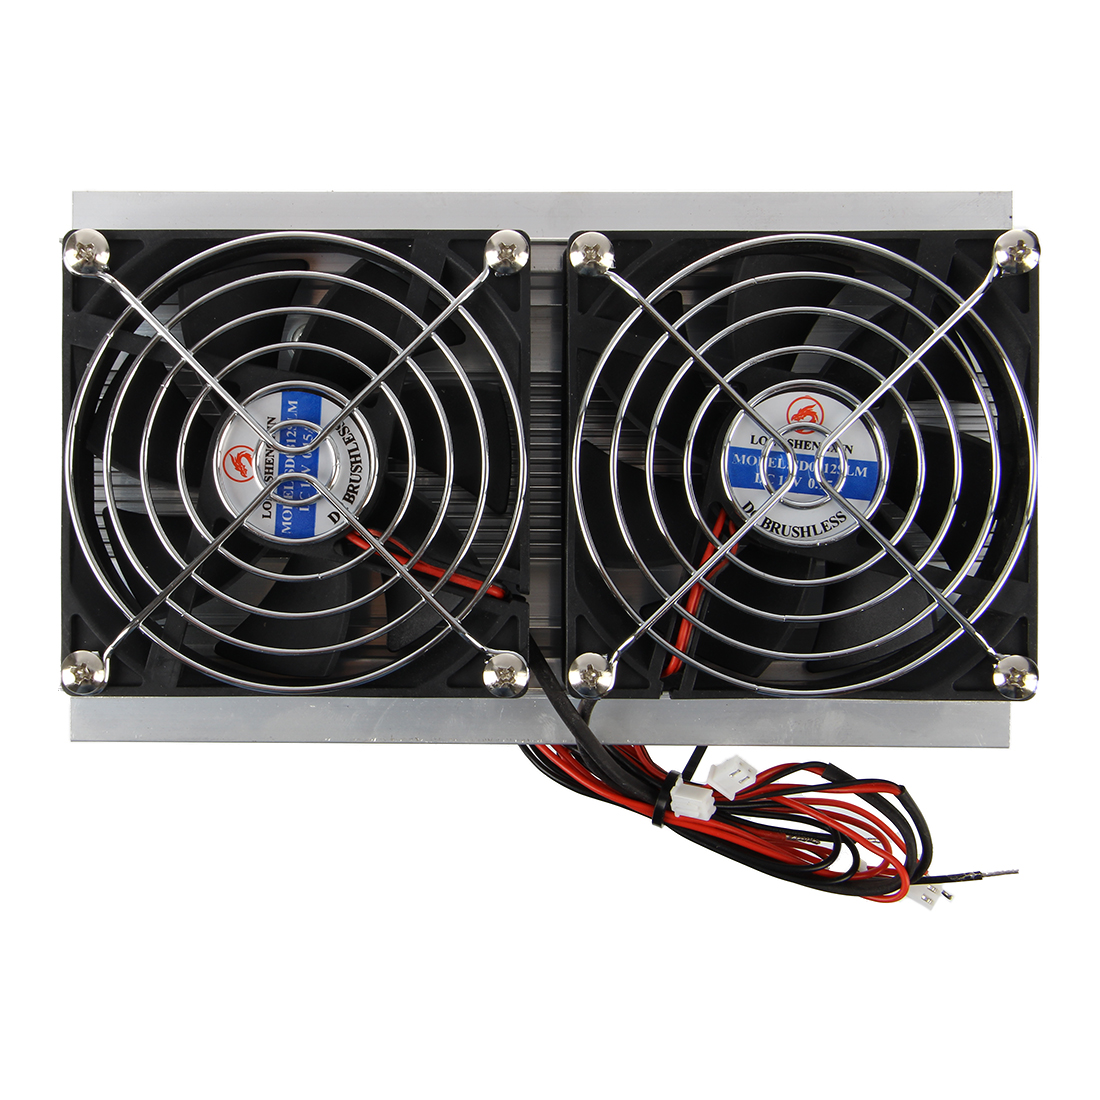 AC 12V 10A 120W Thermoelectric Peltier Refrigeration Cooling System Kit Cooler Double Fan DIY